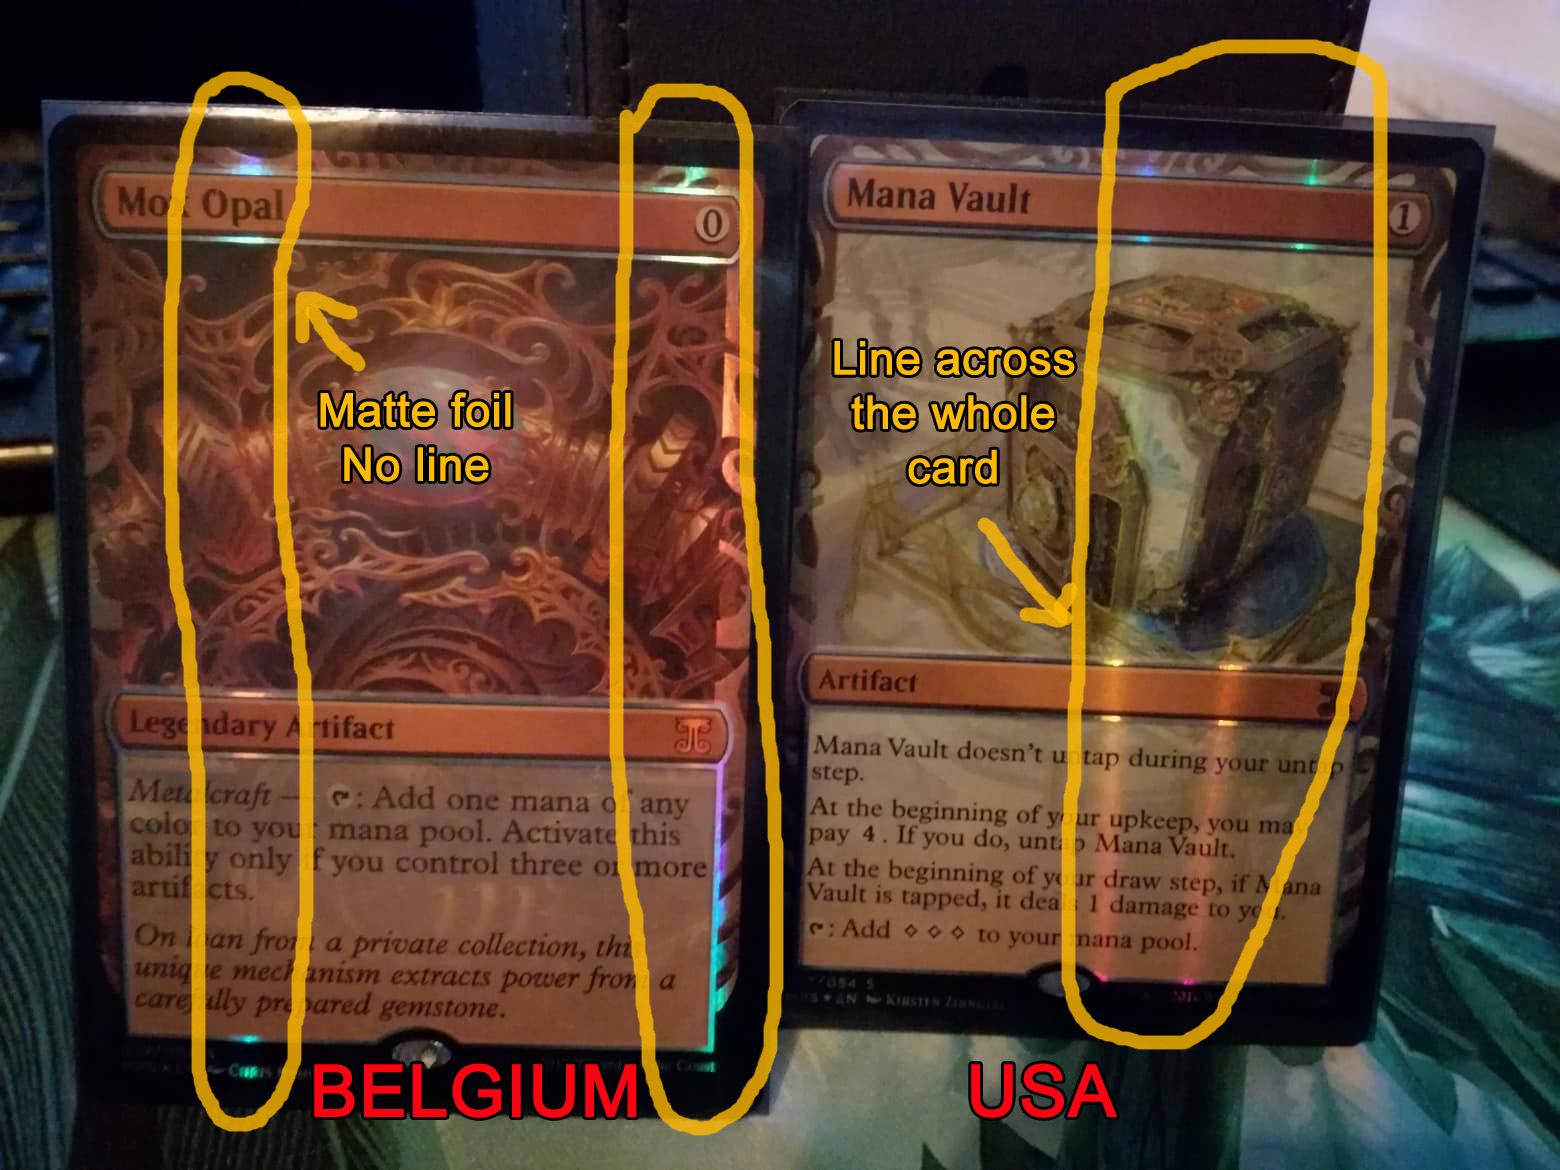 Two kaladesh masterpiece cards with foiling differences highlighted